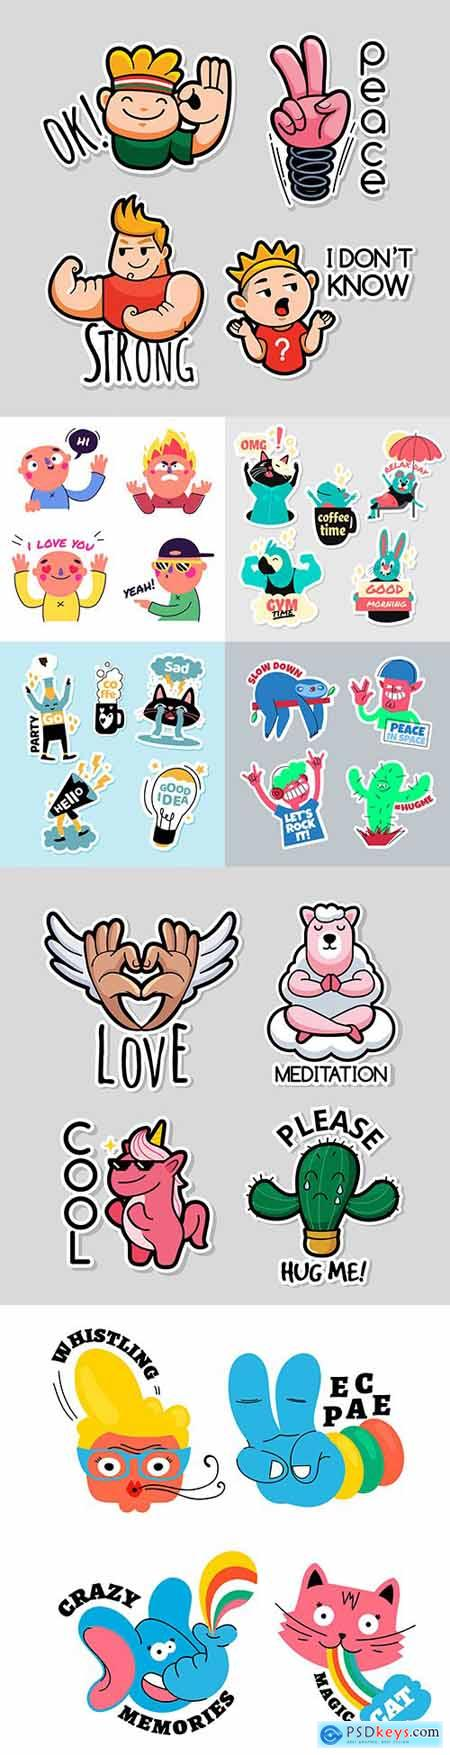 Funny stickers animals and people cartoon design